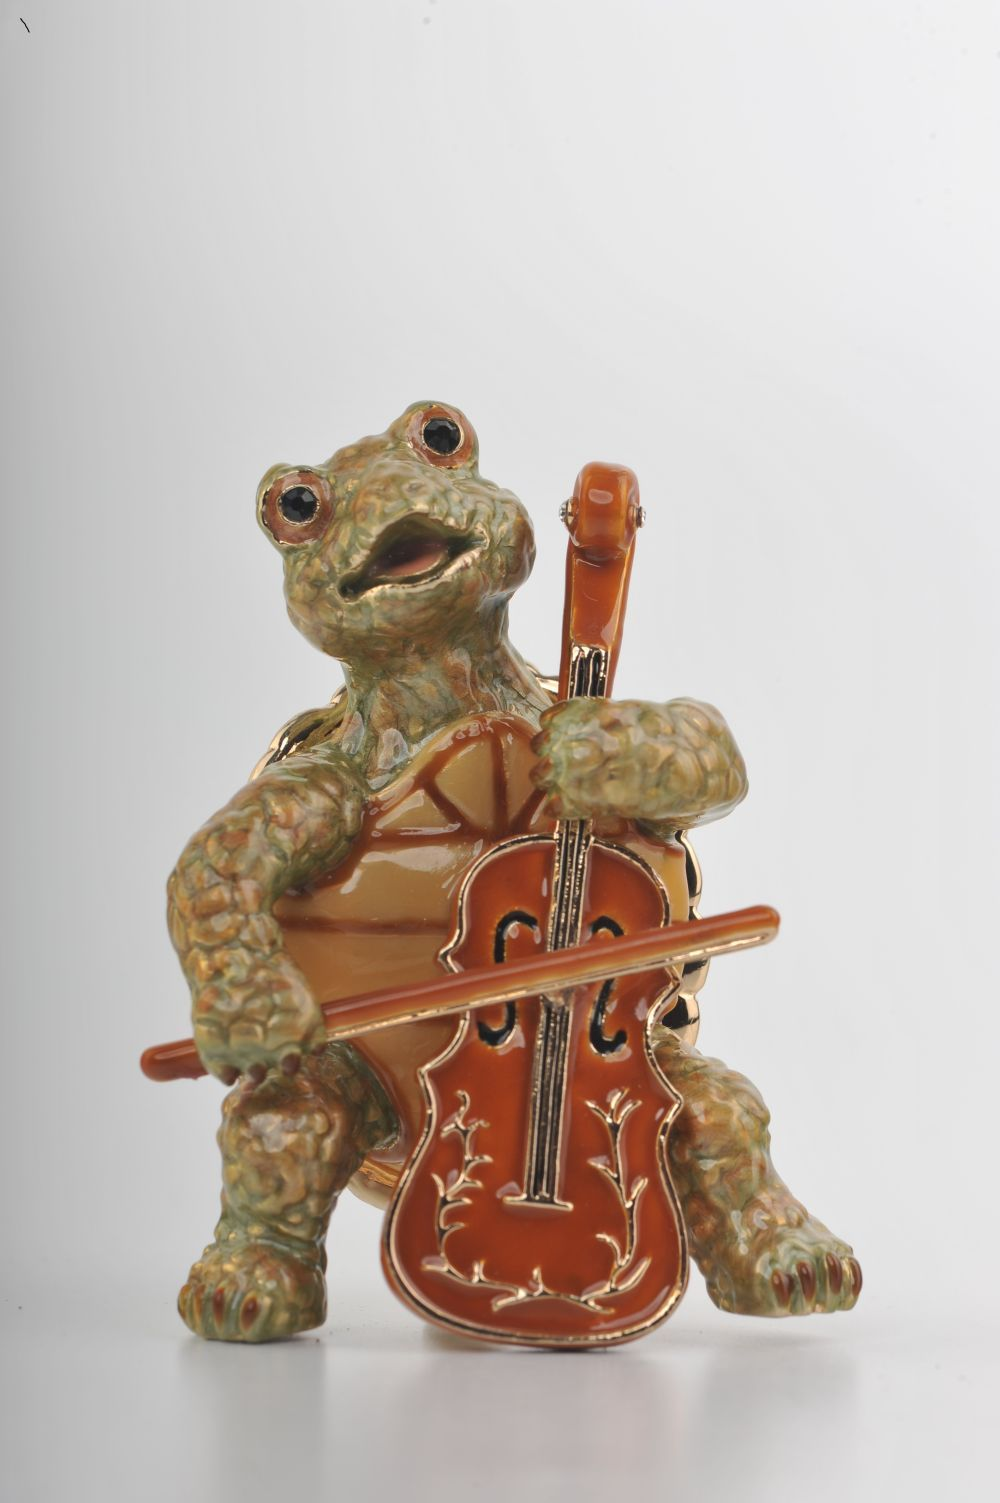 Turtle Playing the Cello